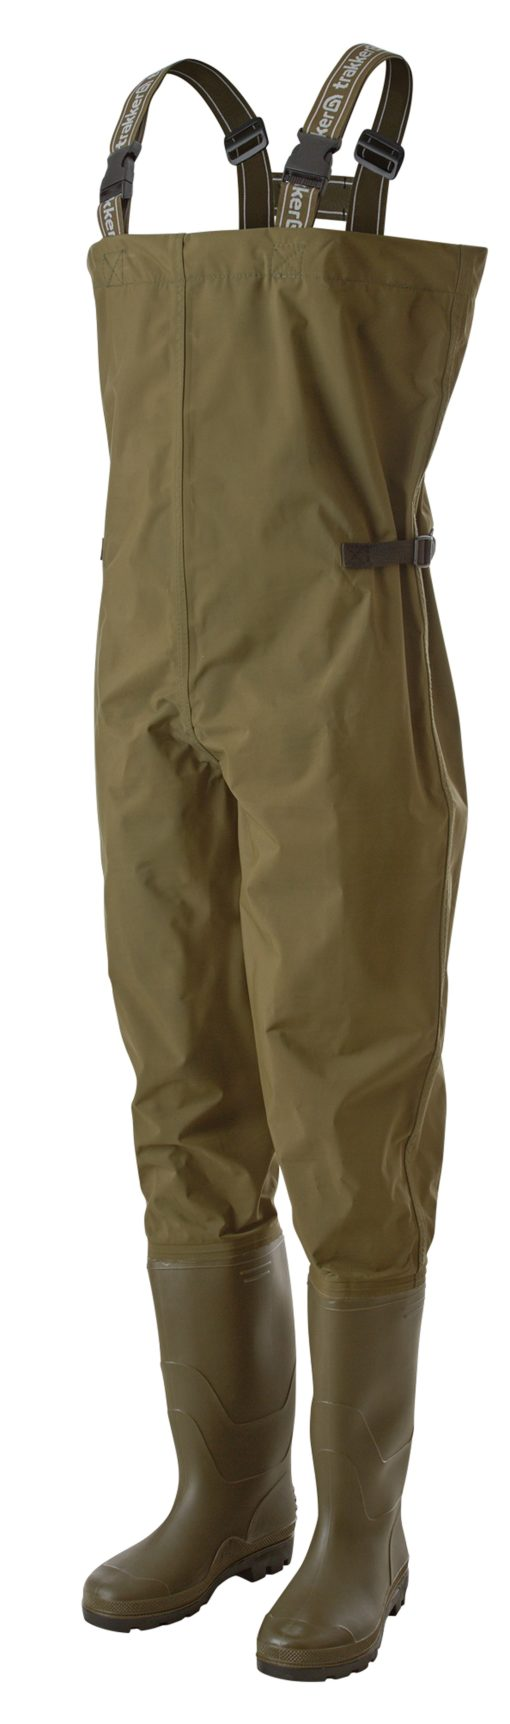 Trakker N2 Chest Waders 3